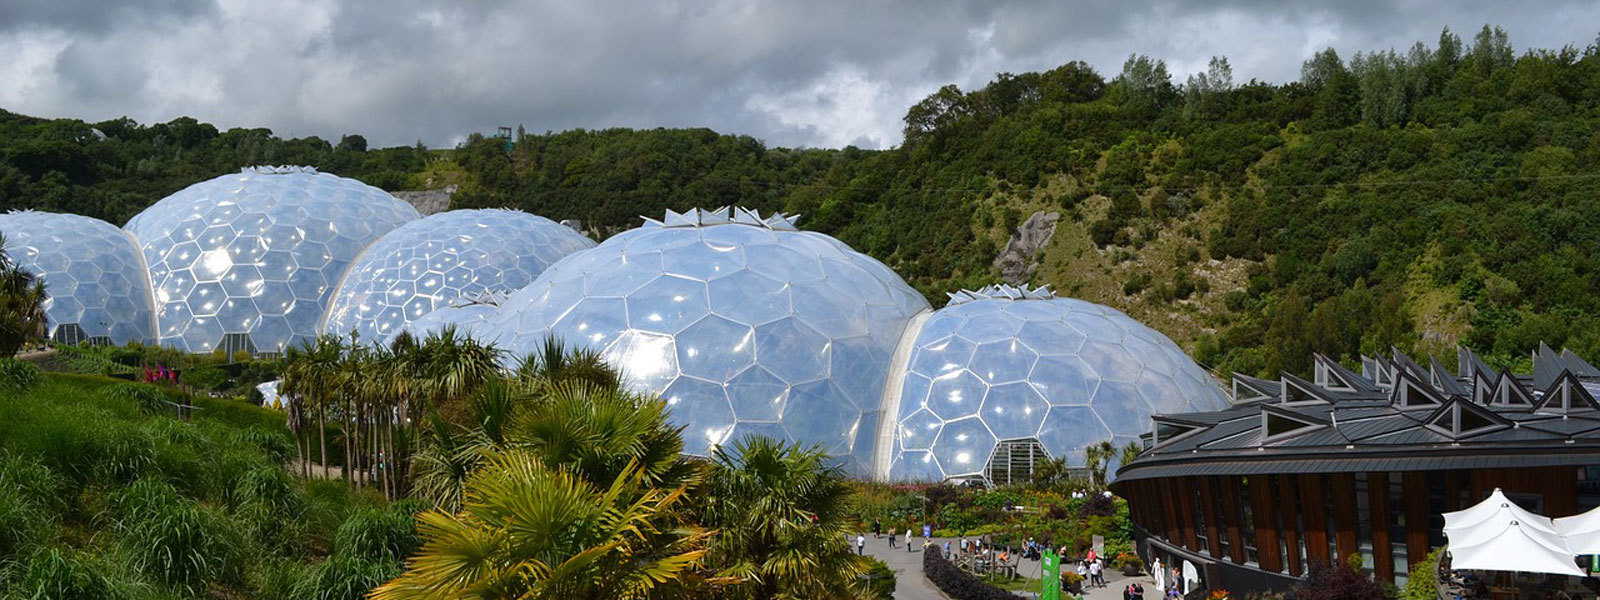 The Eden Project: anything's possible with the right vision